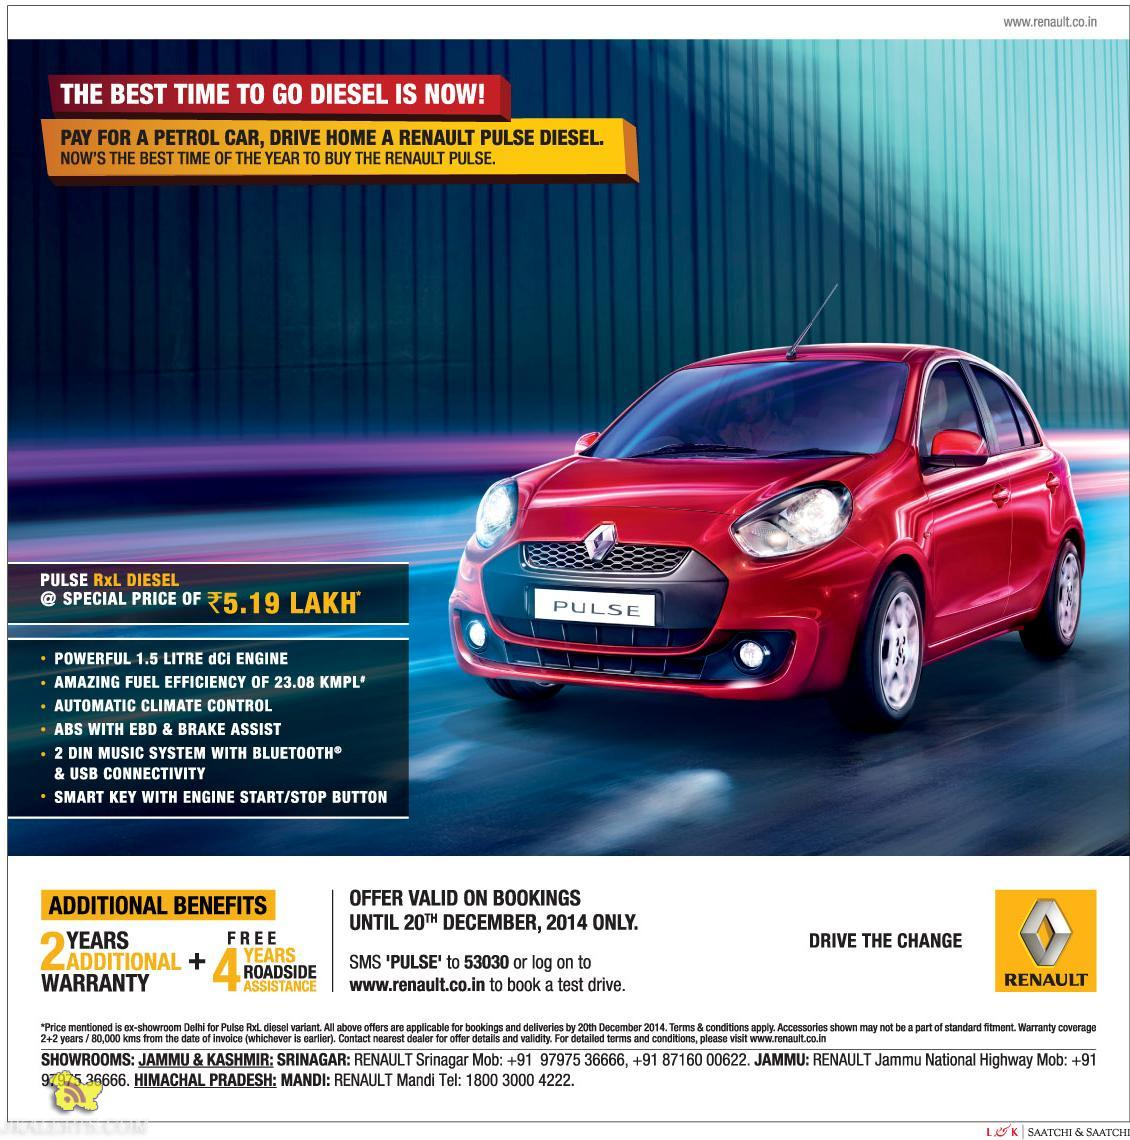 The Best time to go diesel is now Pay for a petrol car, drive home a Renault pulse diesel